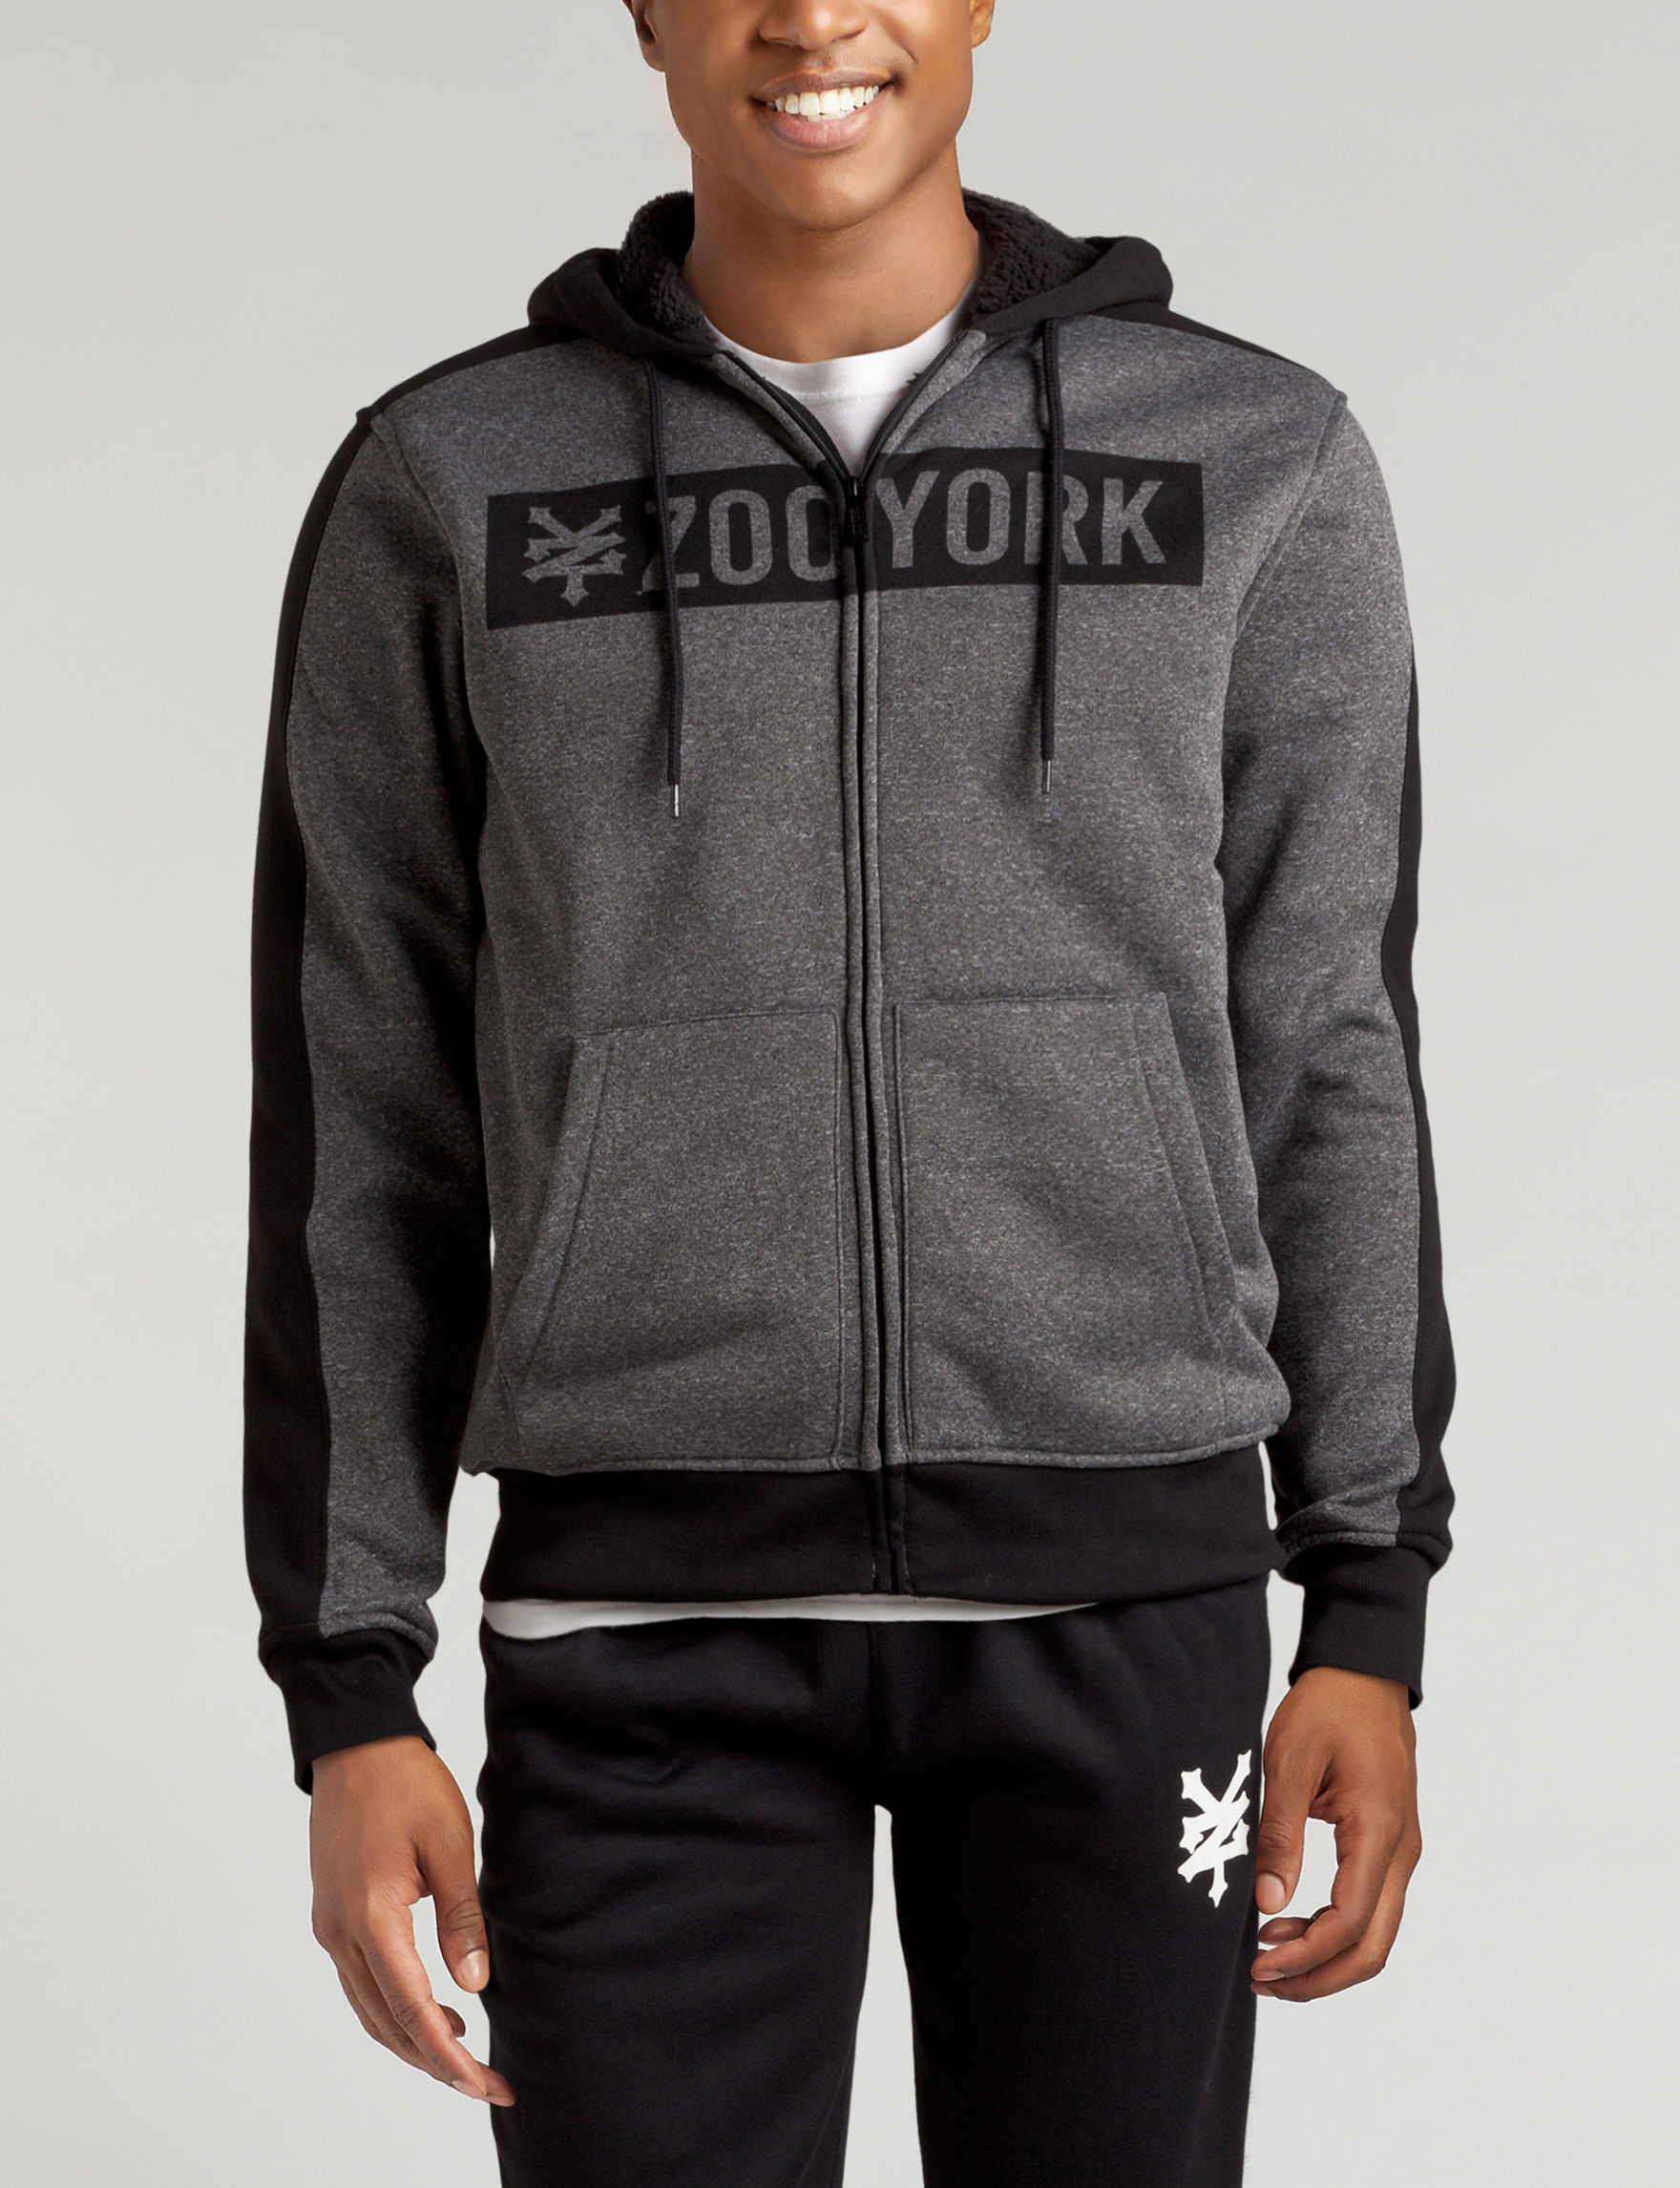 Zoo York Heather Grey Zip-Ups